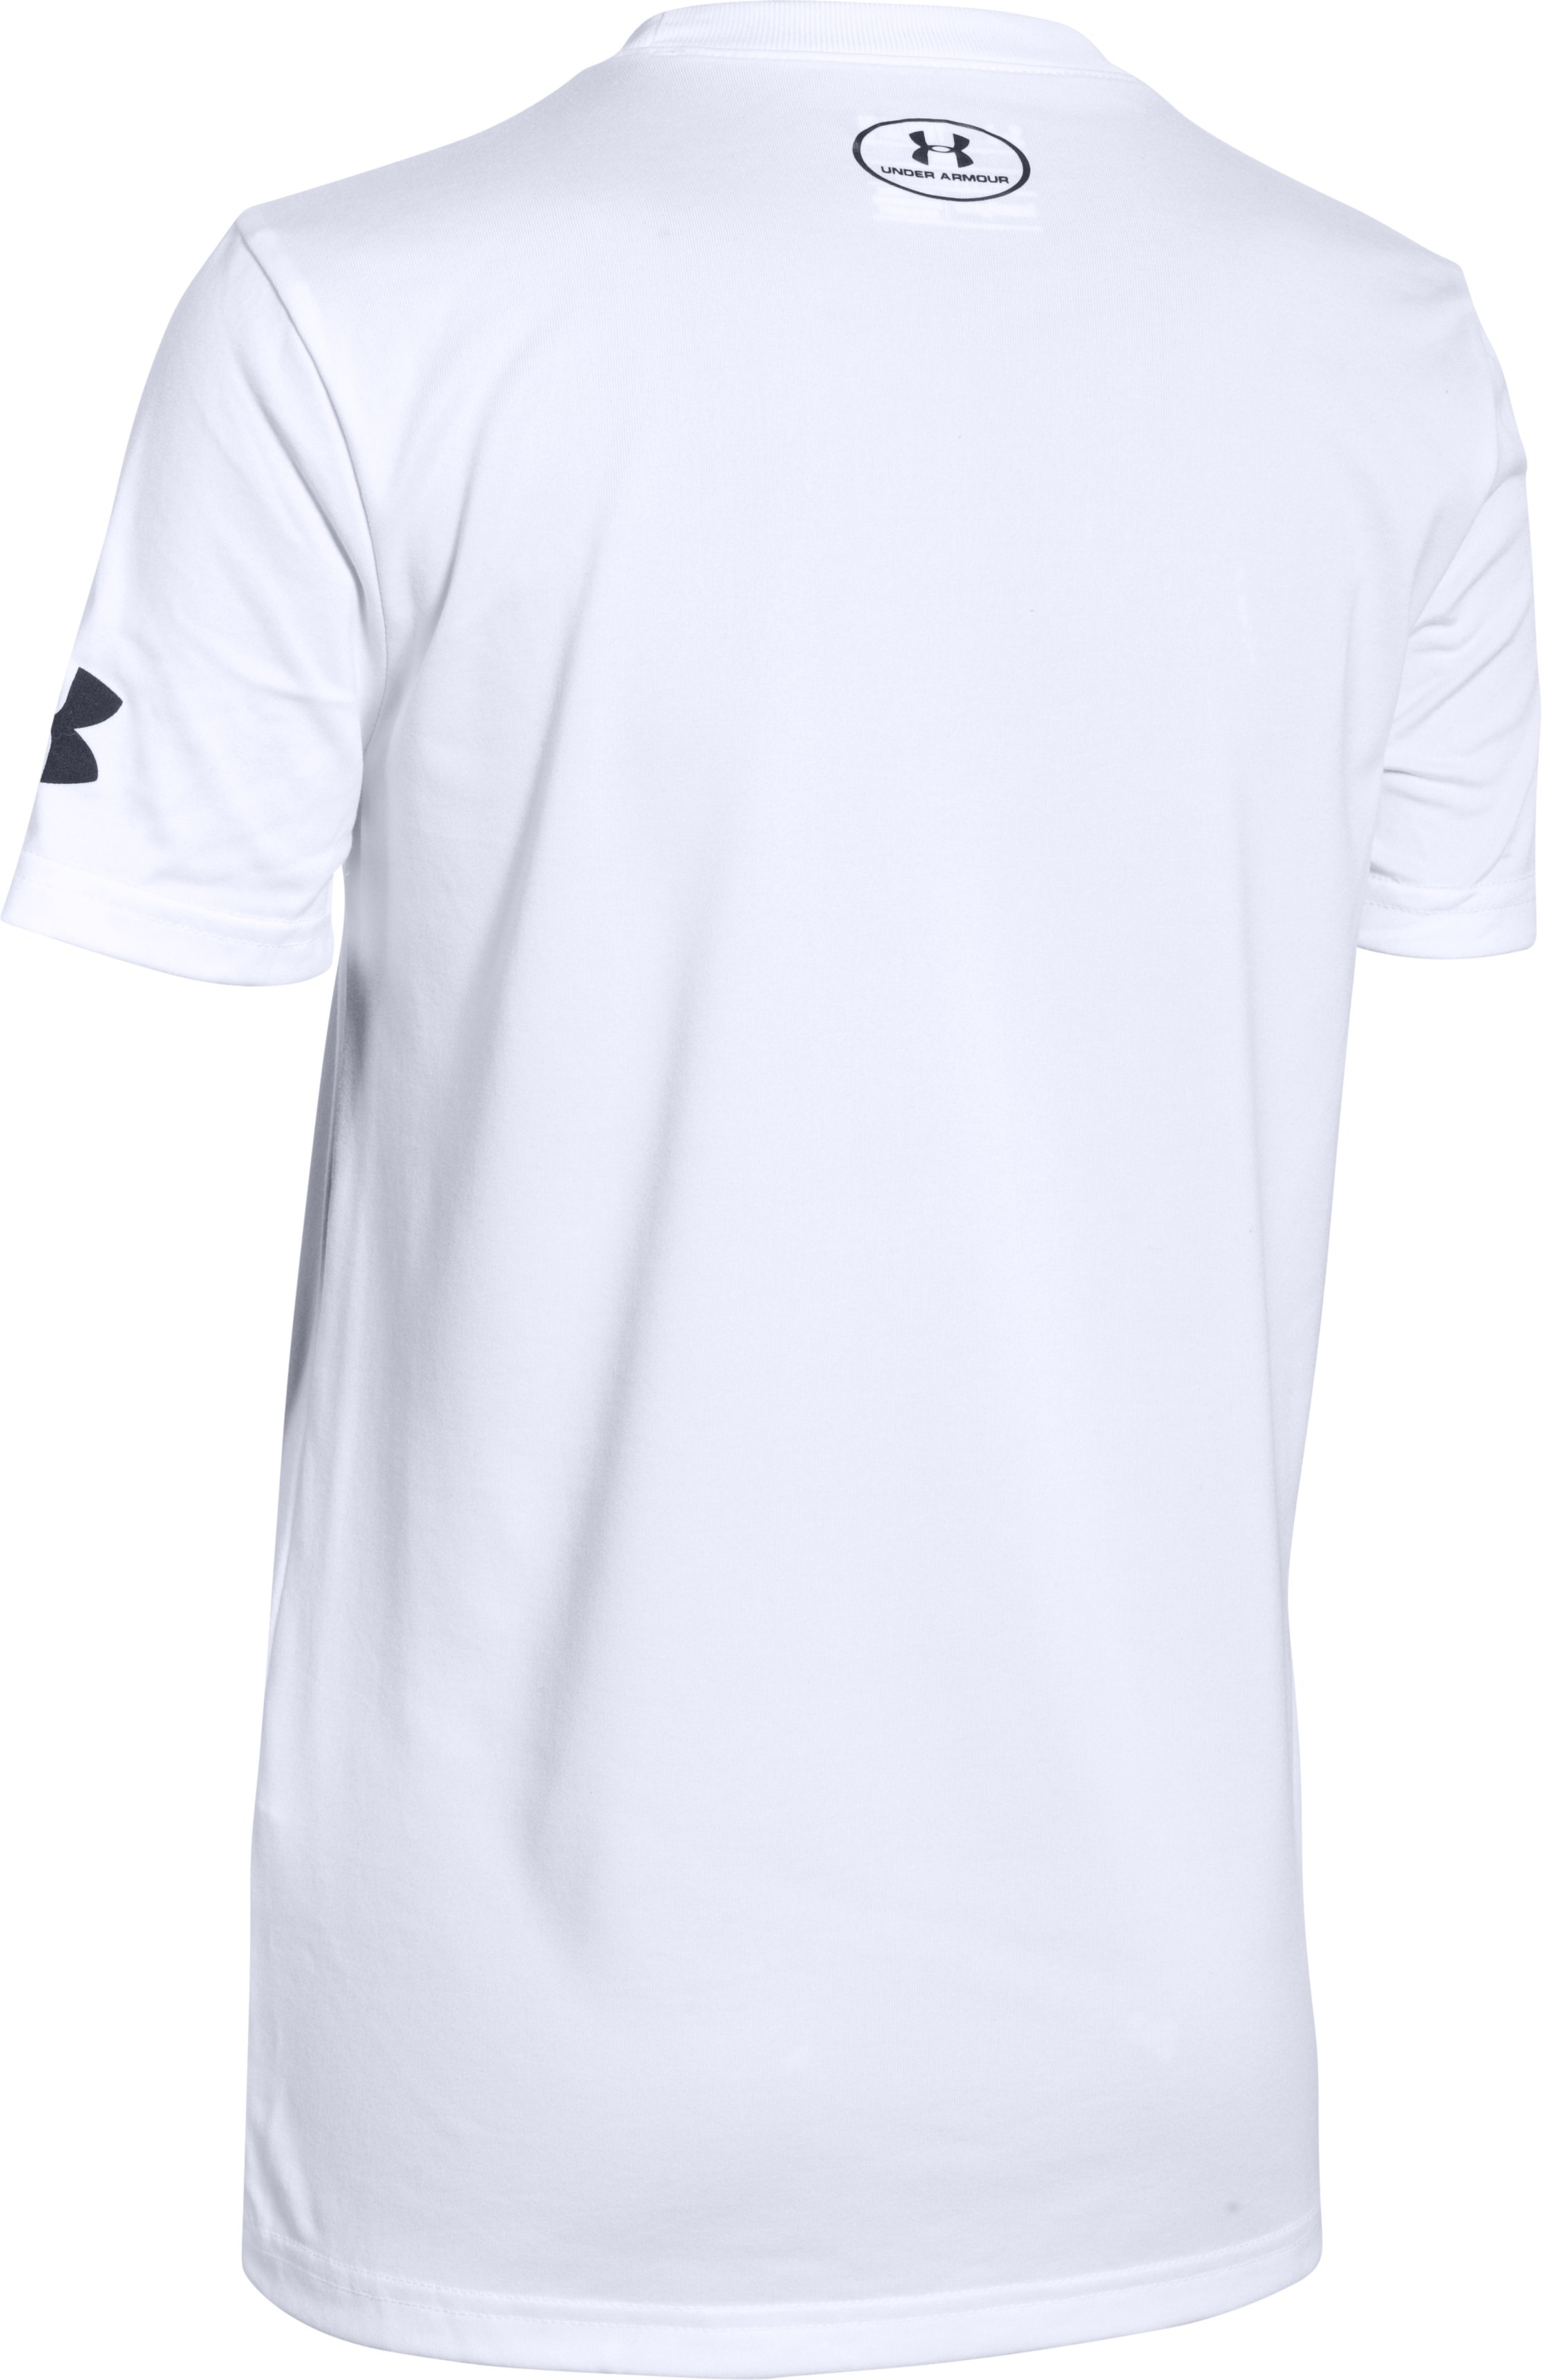 Boys' SC30 Branded T-Shirt, White